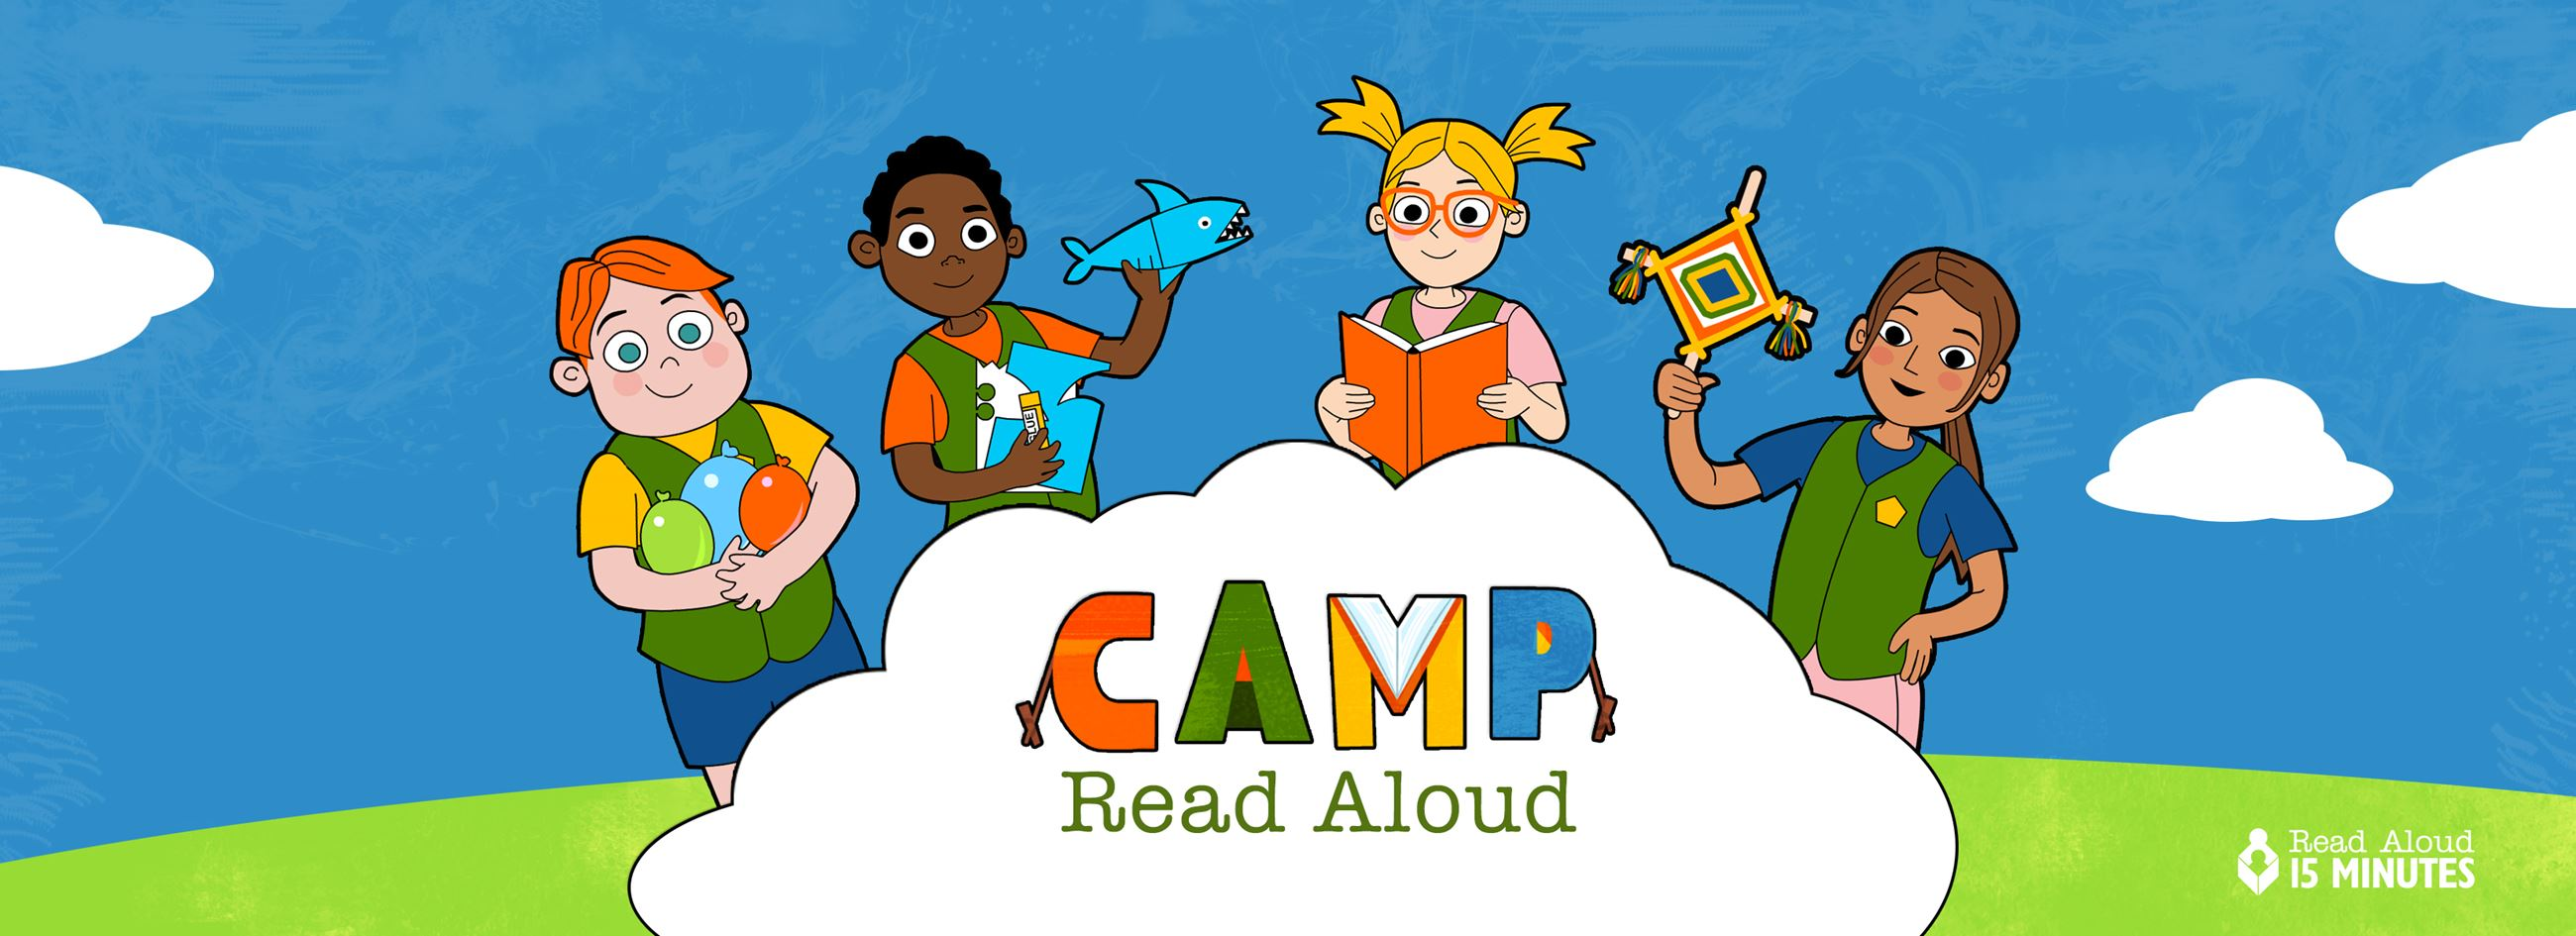 ReadAloud_coverphoto_camp Opens in new window